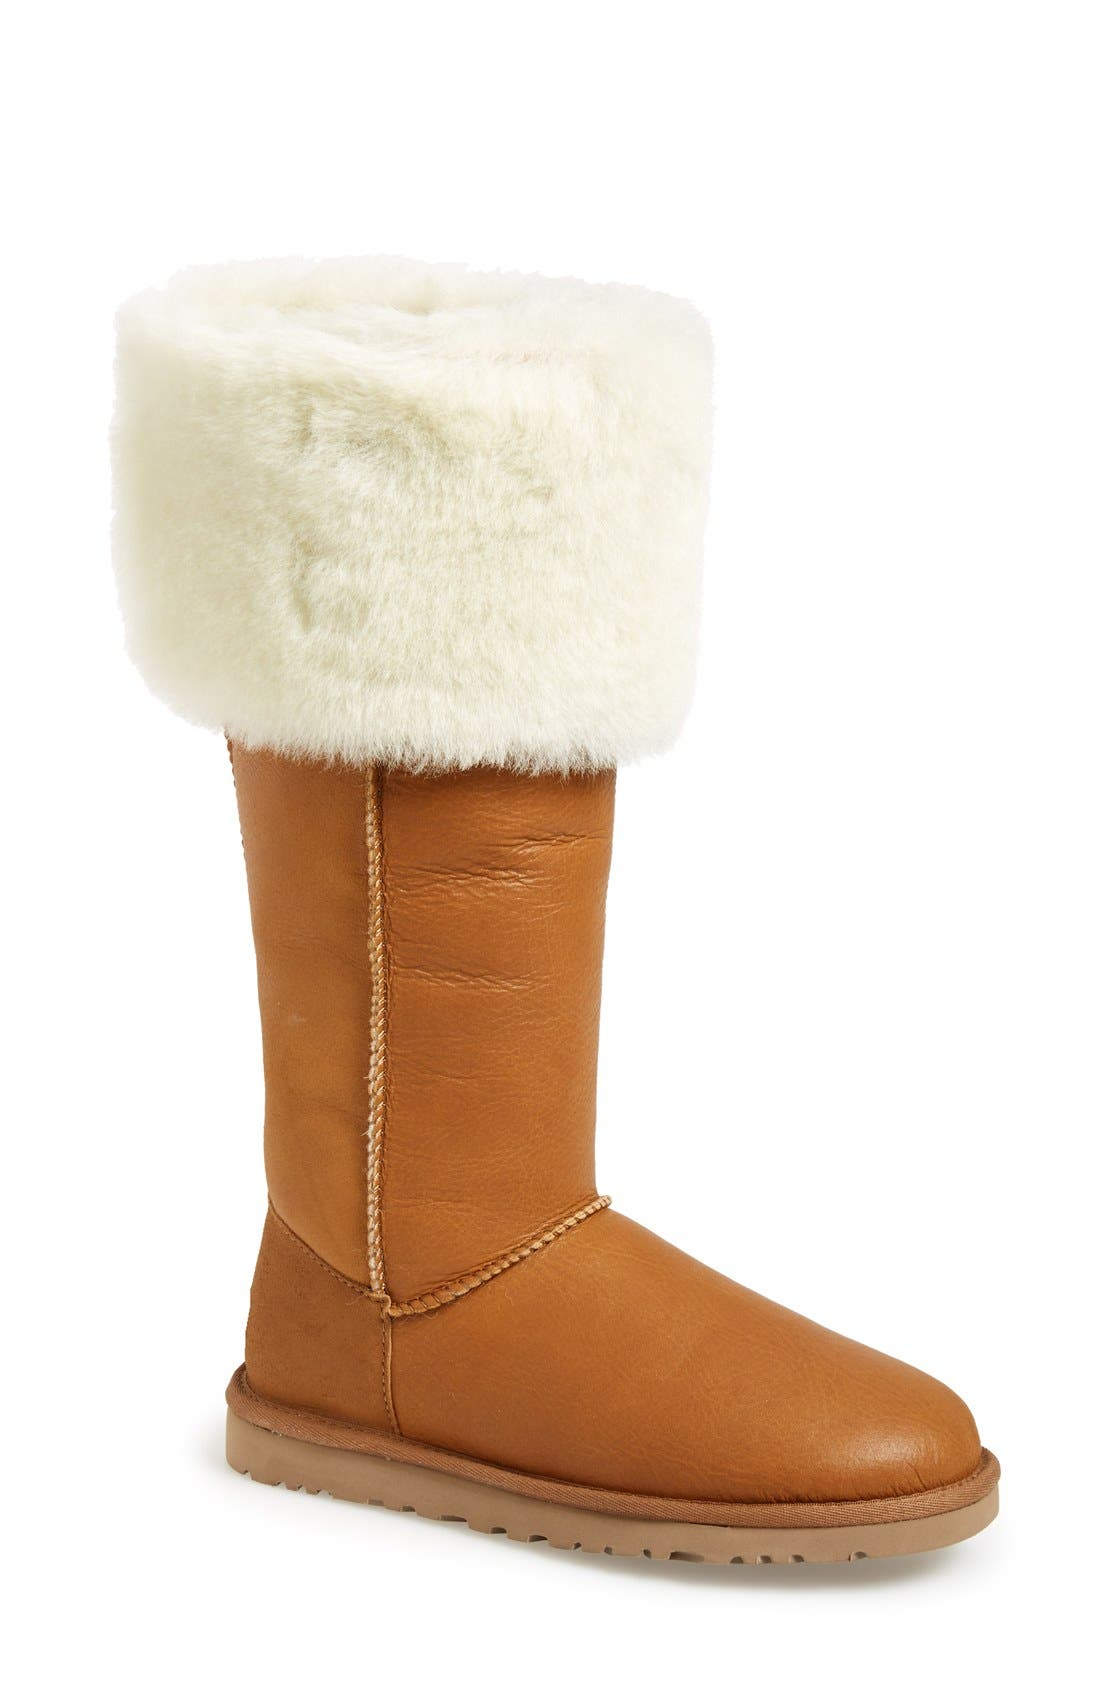 'Devandra' Convertible Over the Knee Boot, Main, color, 214